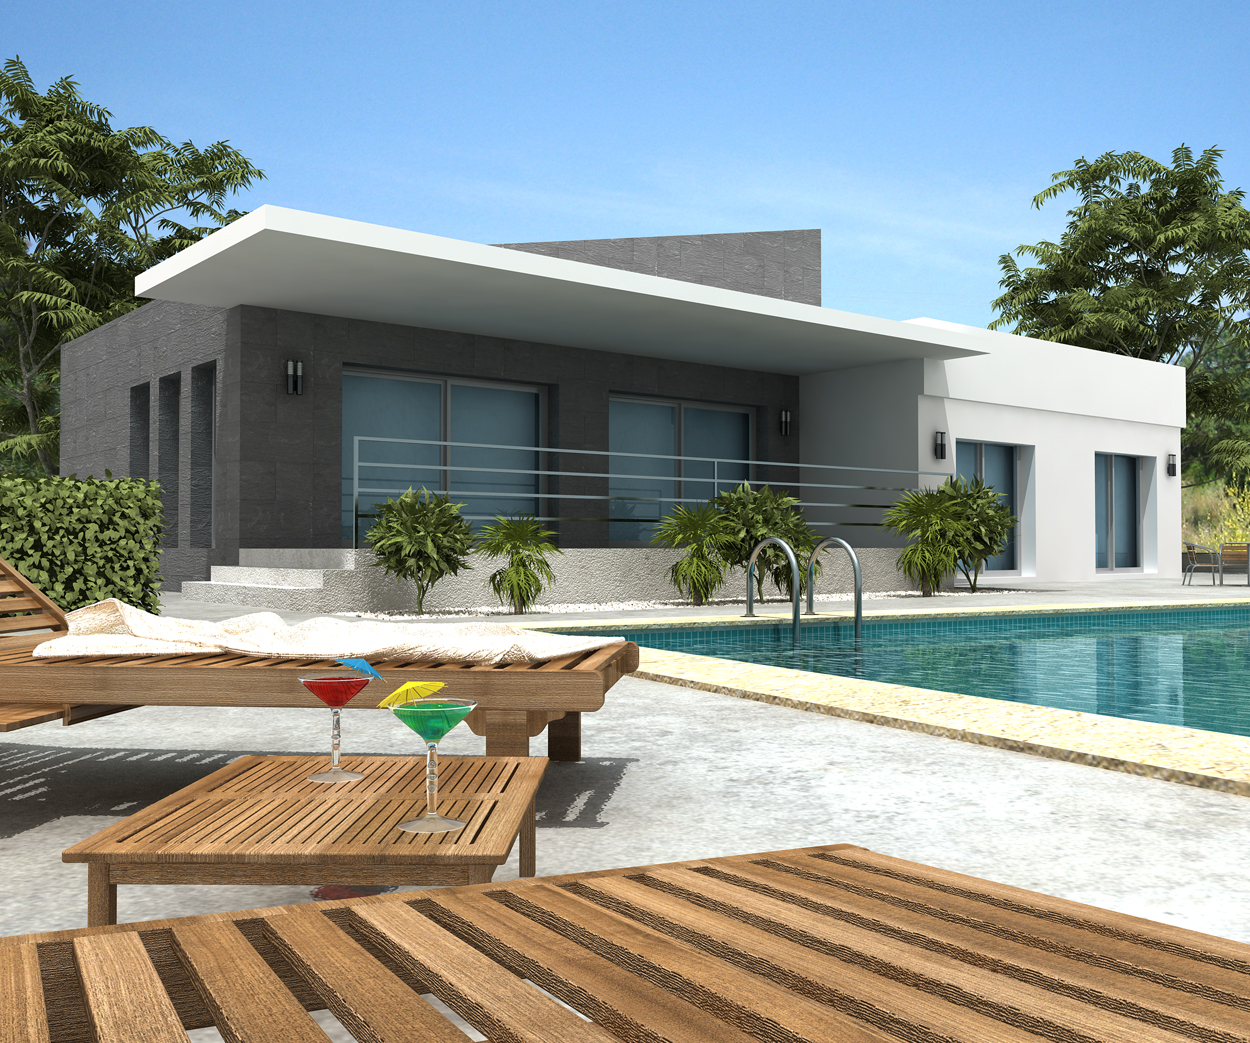 New home designs latest modern villa designs for New home designs pictures